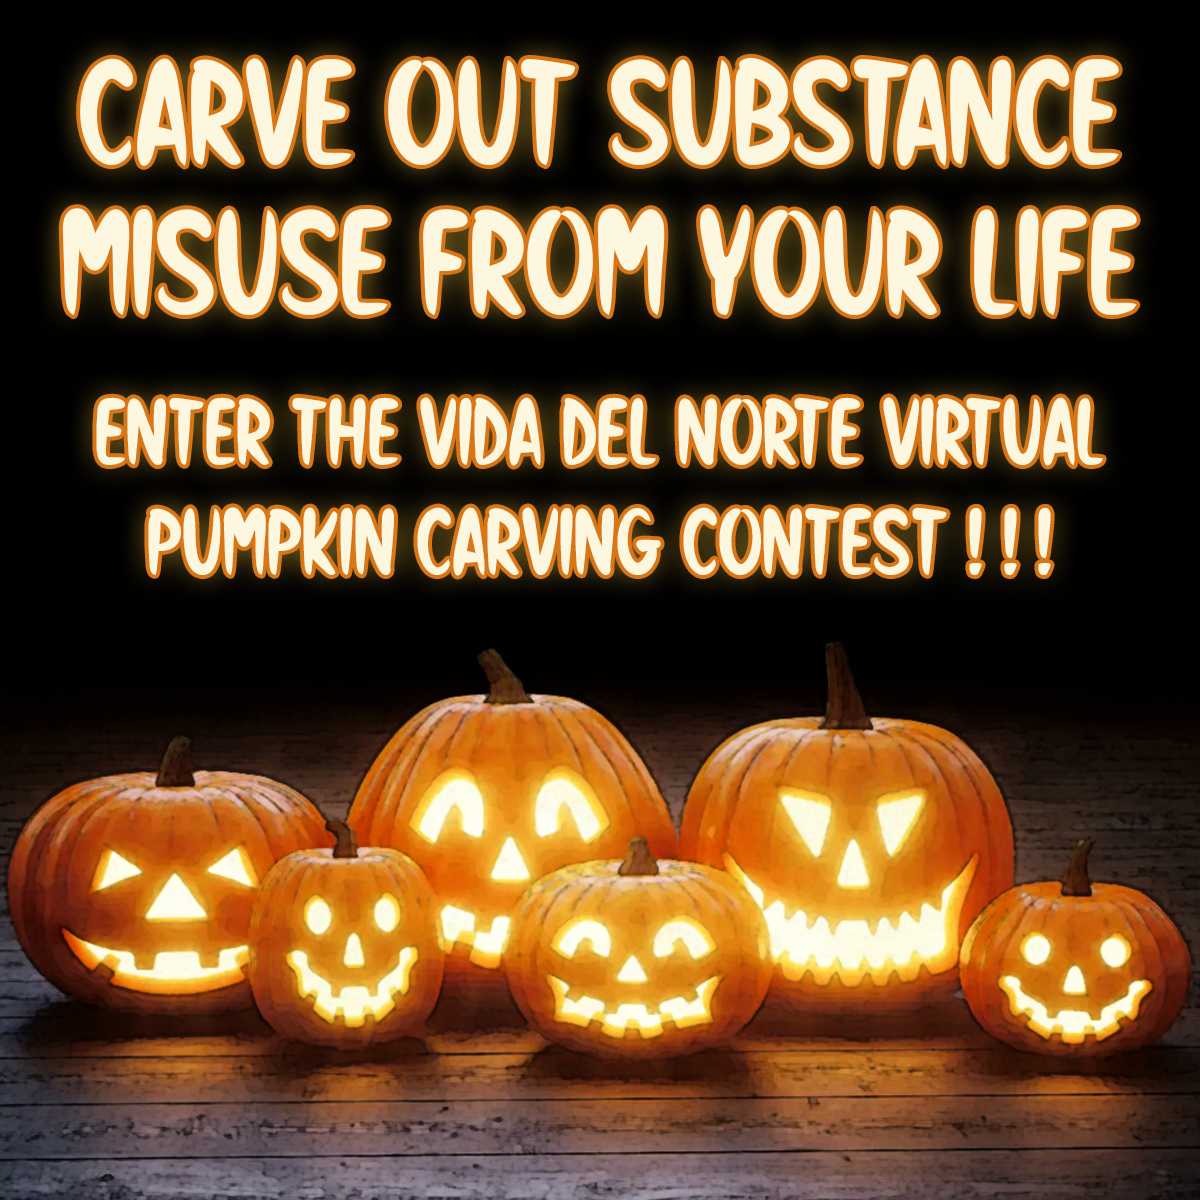 Carve out substance misuse from your life. Enter the Vida Del Norte Virtual Pumpkin Carving Contest